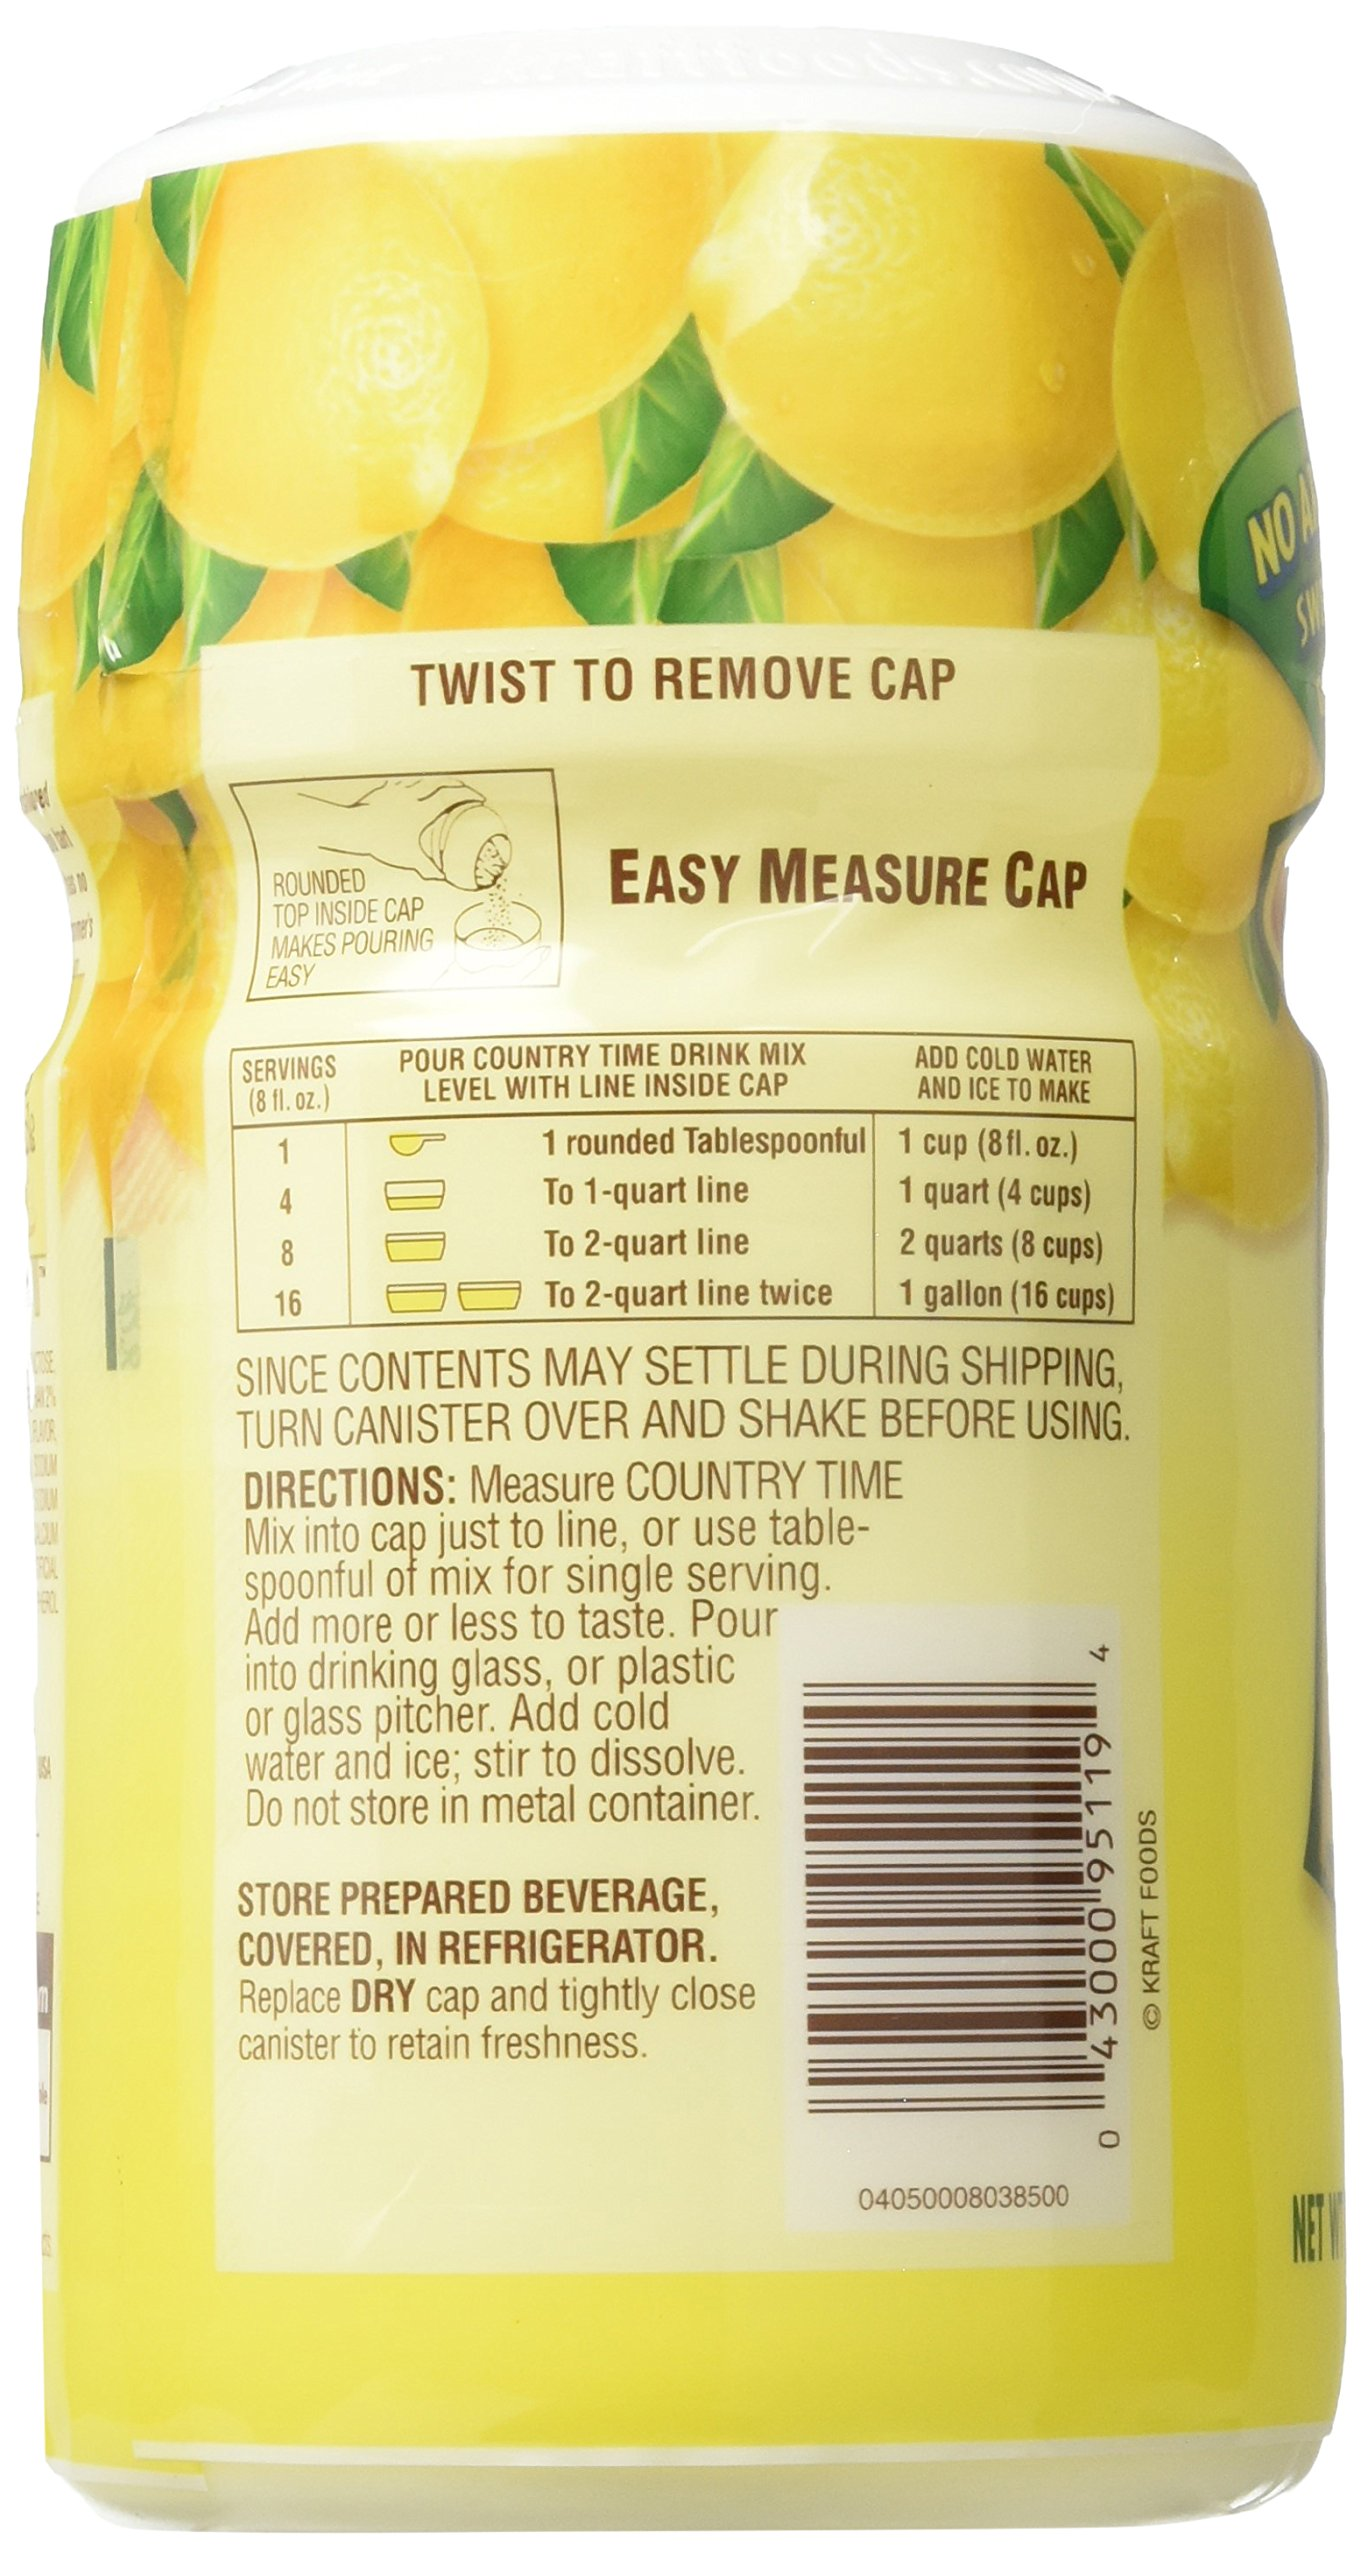 Country Time Lemonade Directions